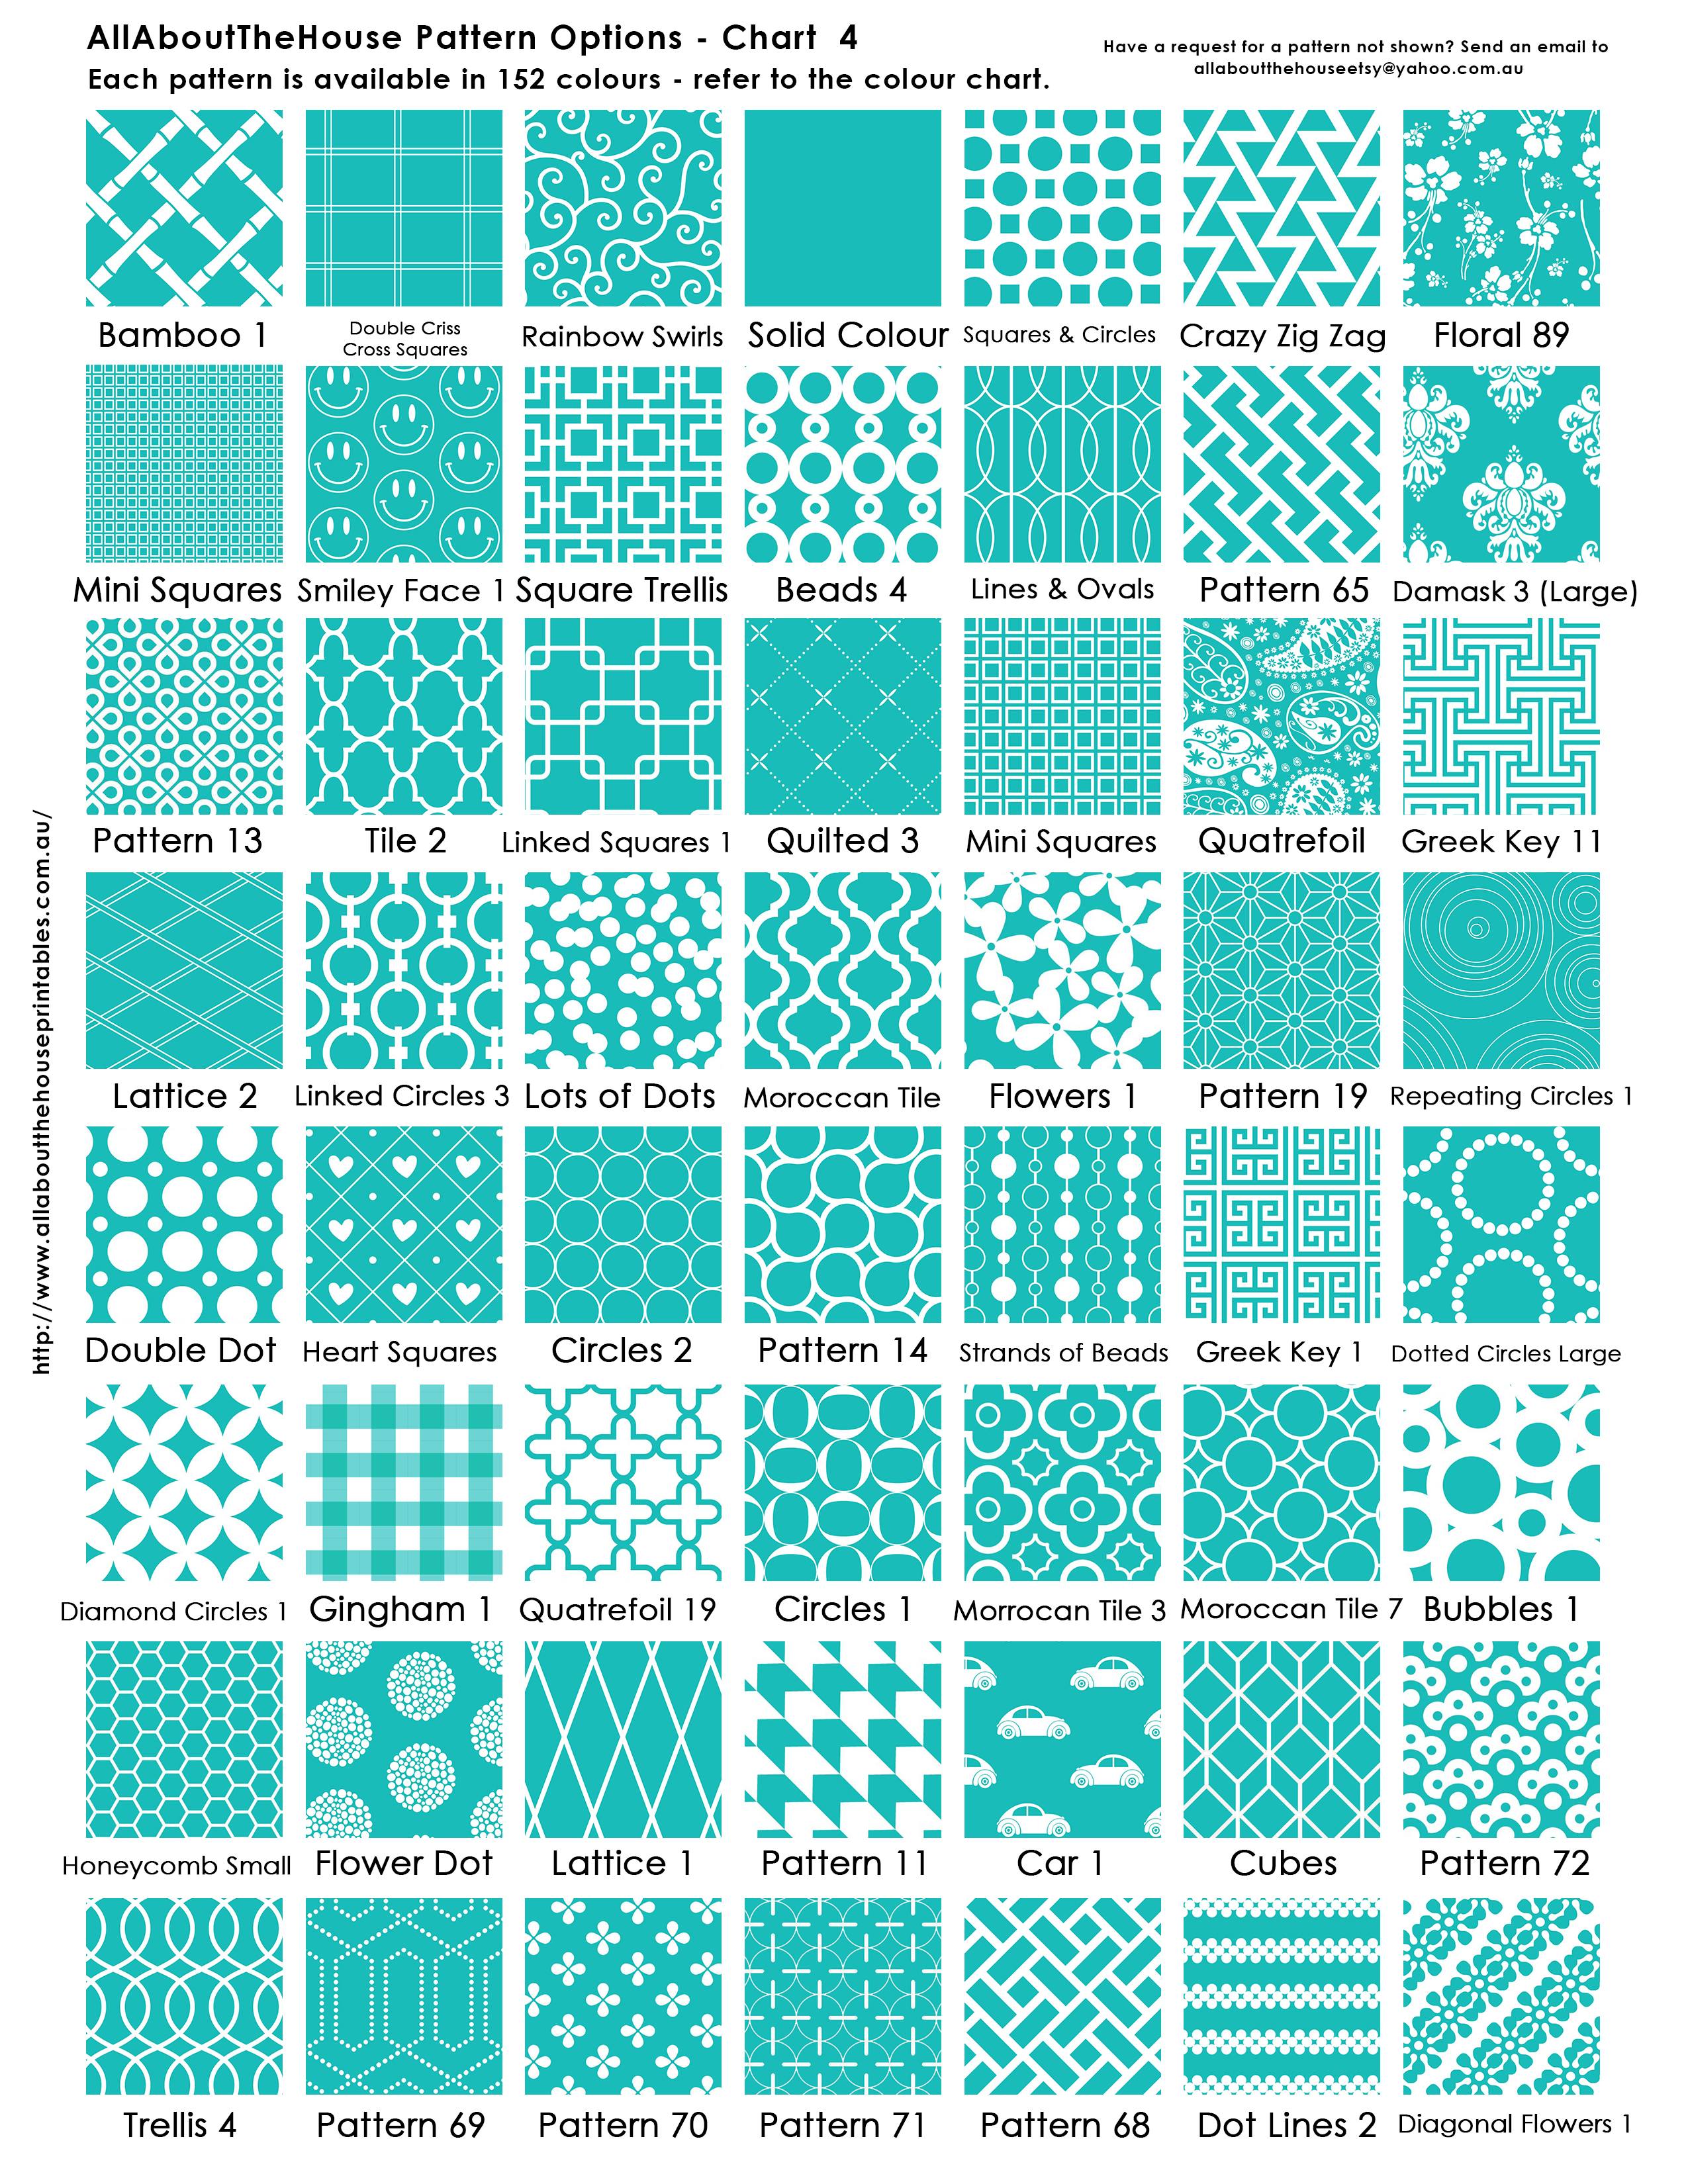 pattern-chart-4-allaboutthehouse-printables.jpg